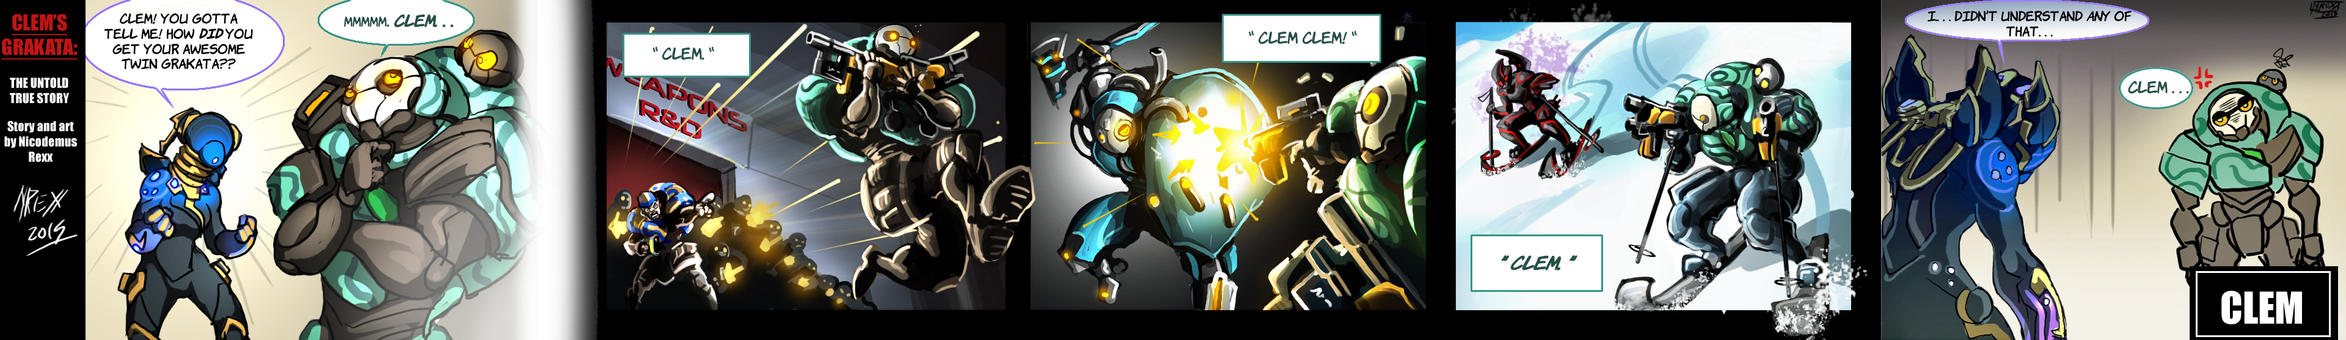 Clem's Grakata: The Untold True Story by Th4rlDEAL